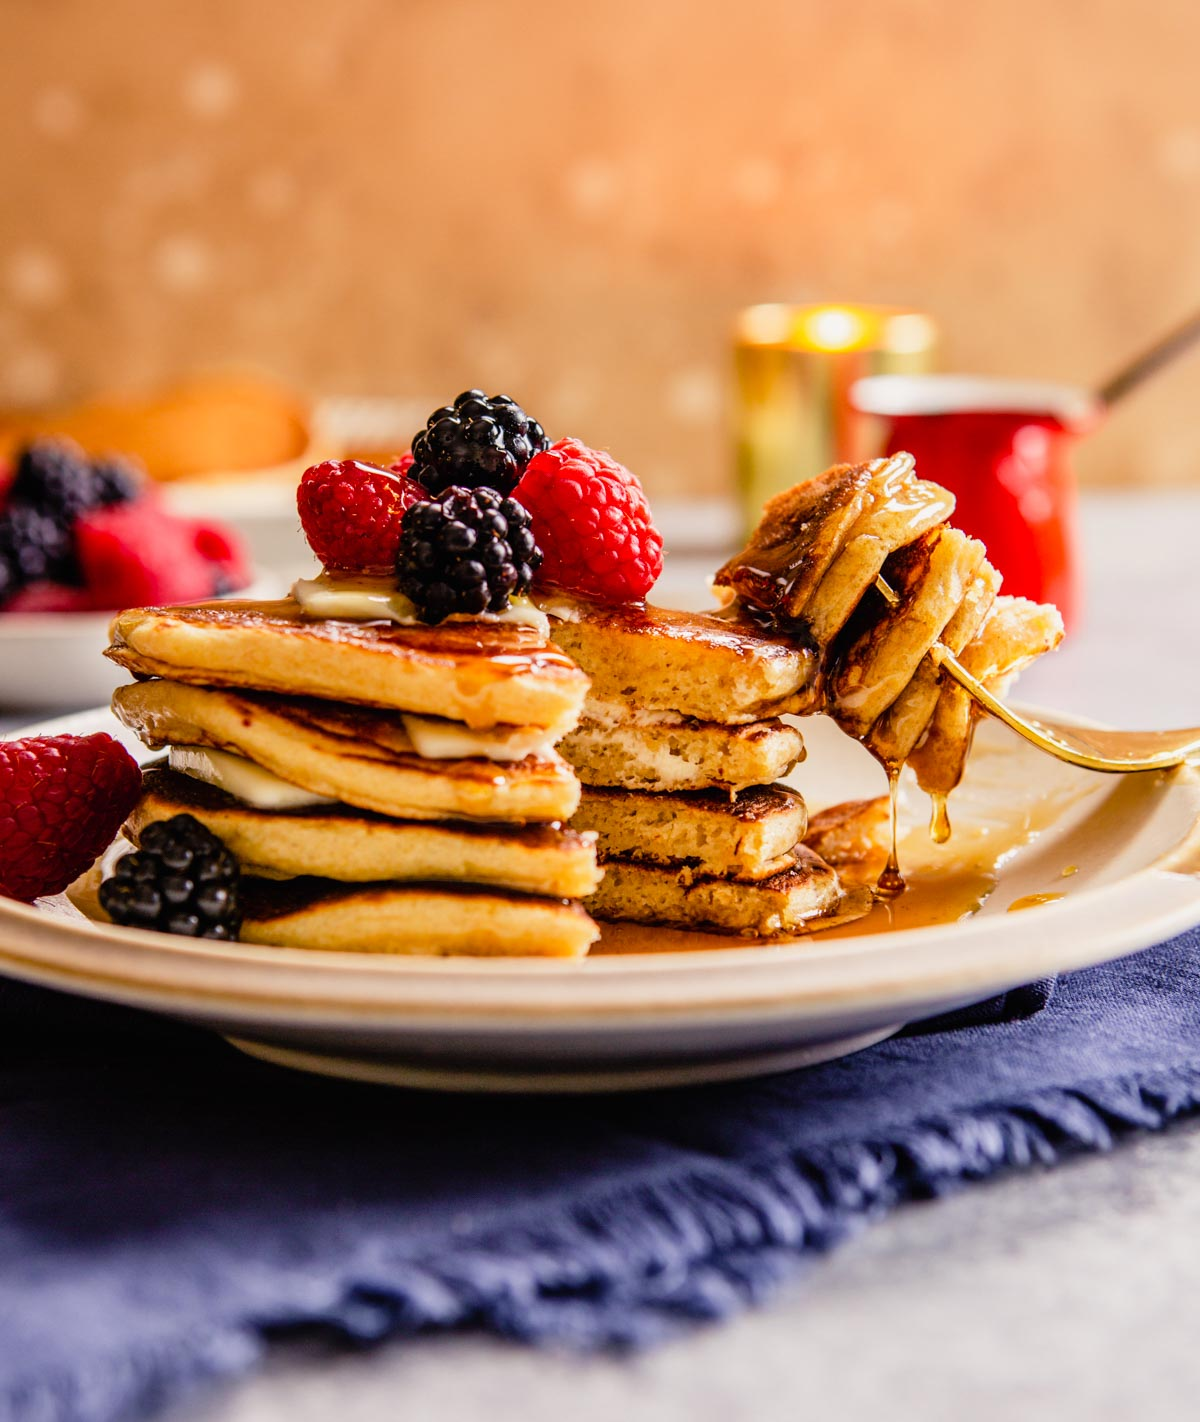 whole wheat pancakes stacked on a plate with berries on top and maple syrup dripping down